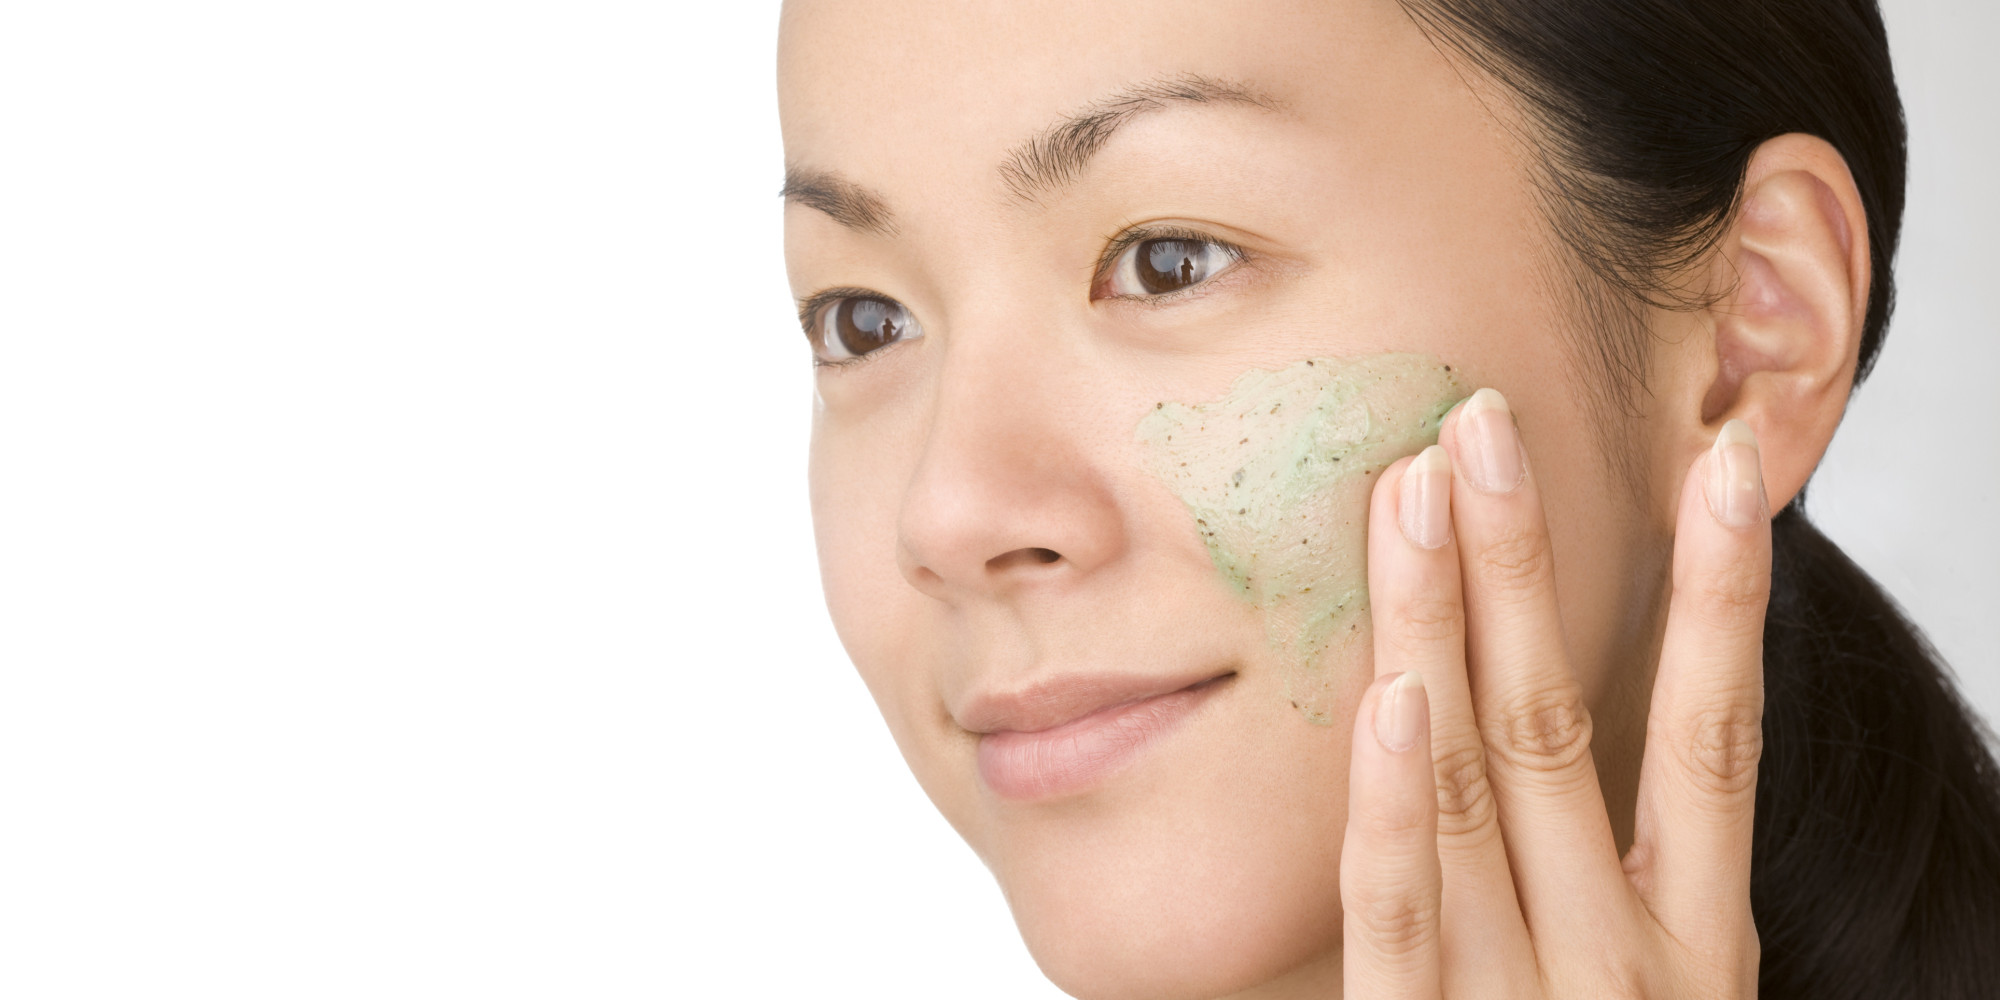 from Hezekiah what is the best facial scrub